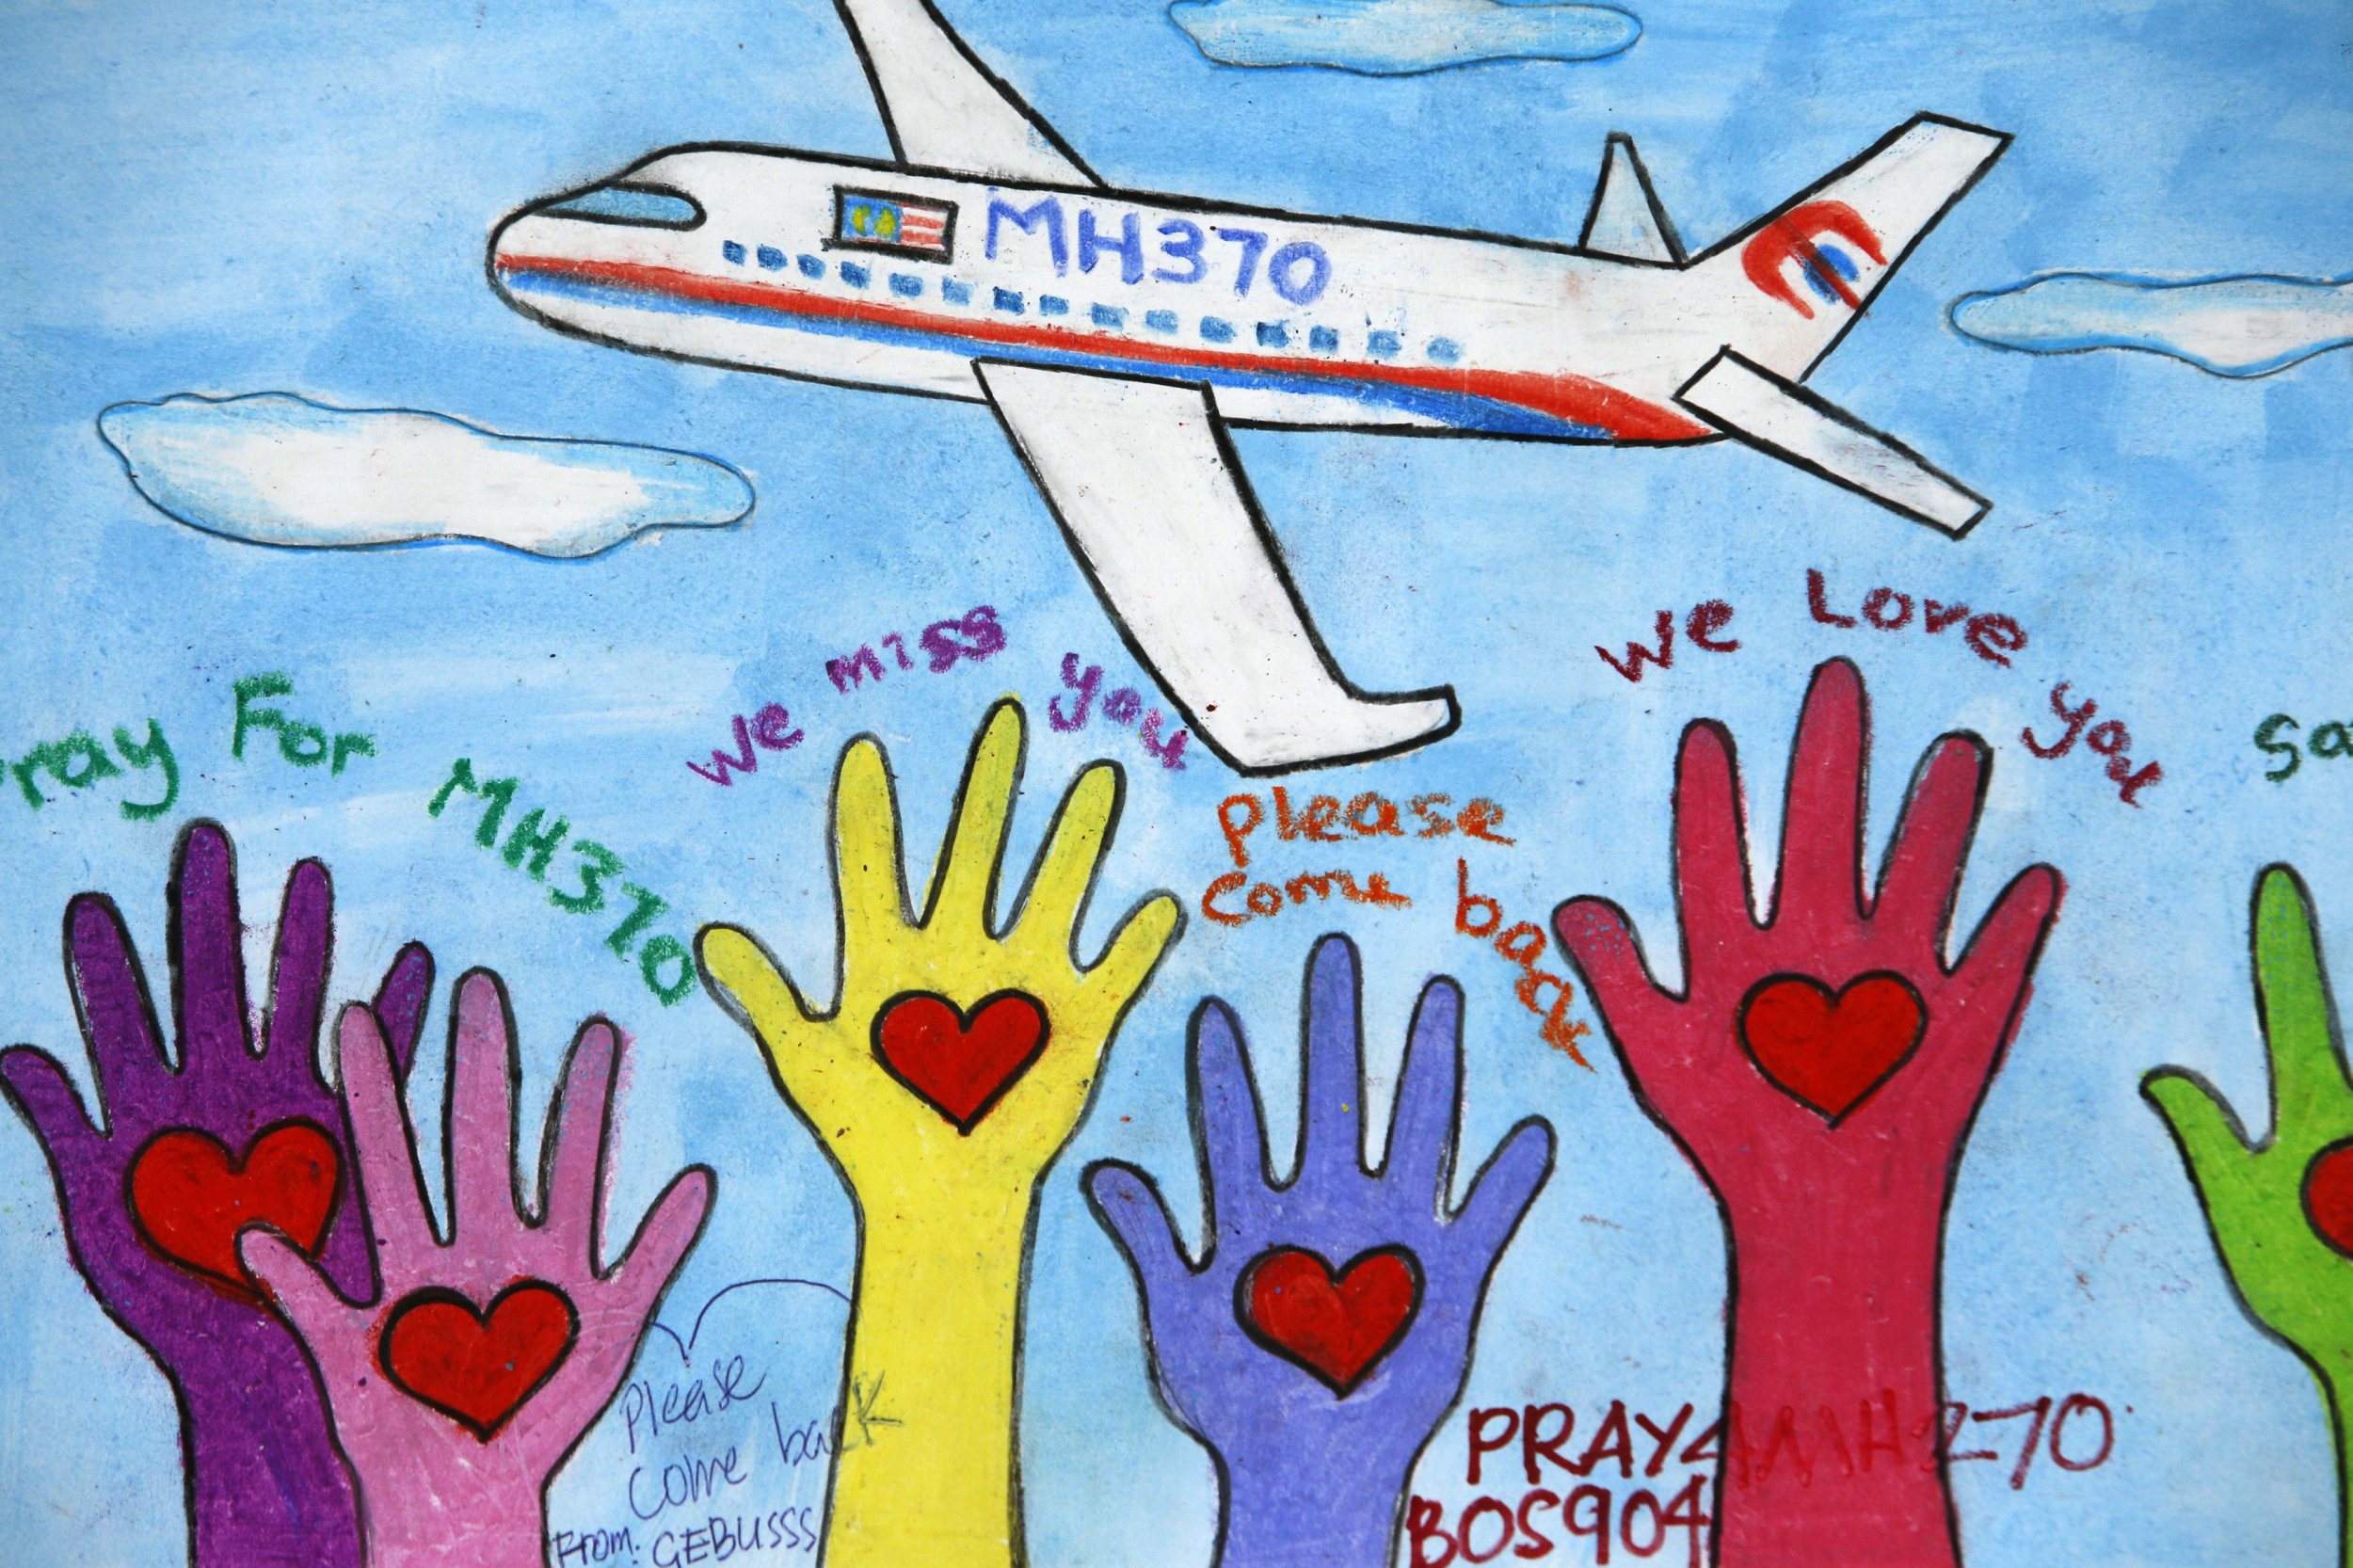 MH370 artwork